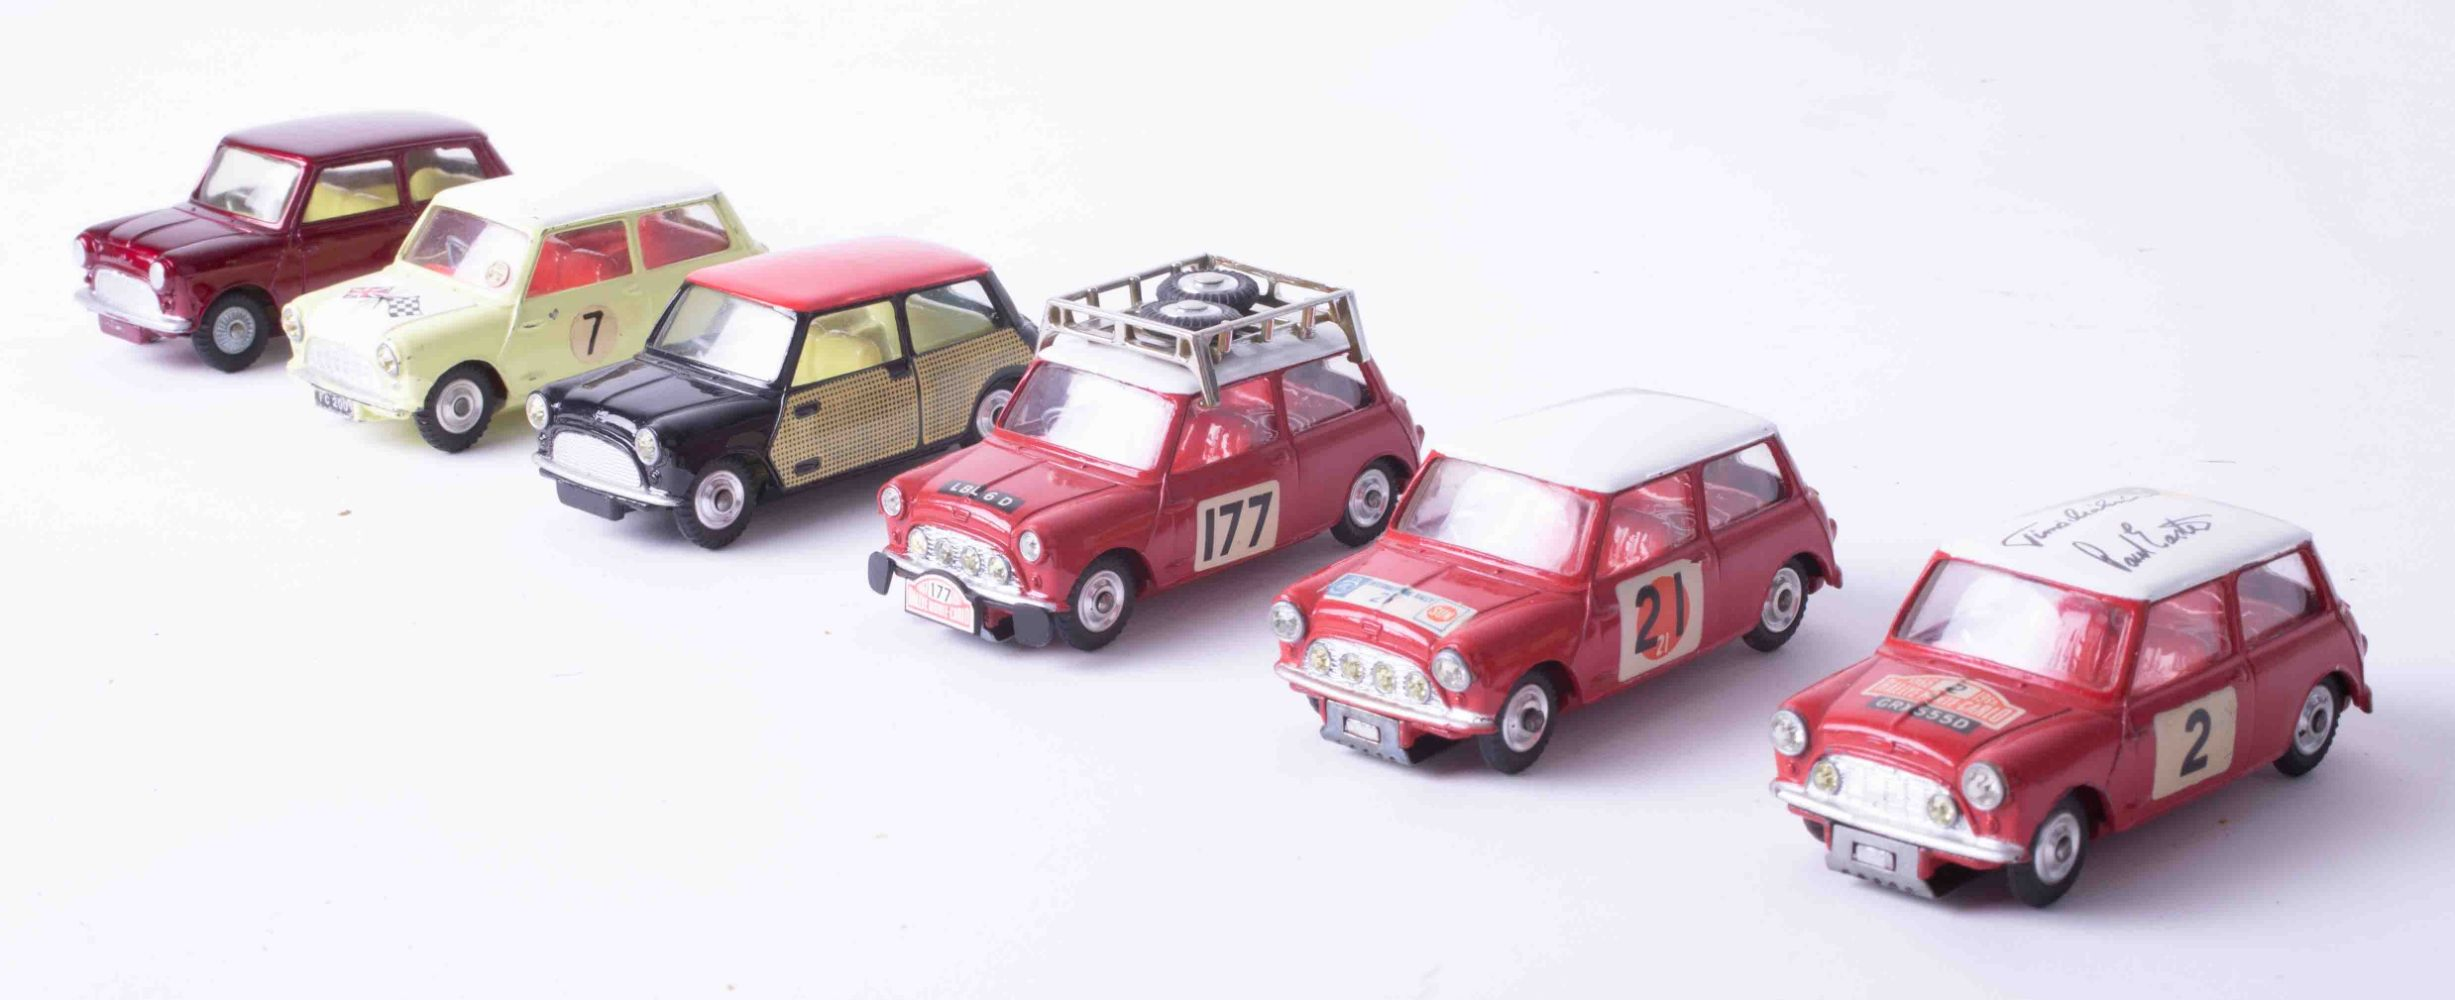 Antiques & Collectables featuring Toys & Models